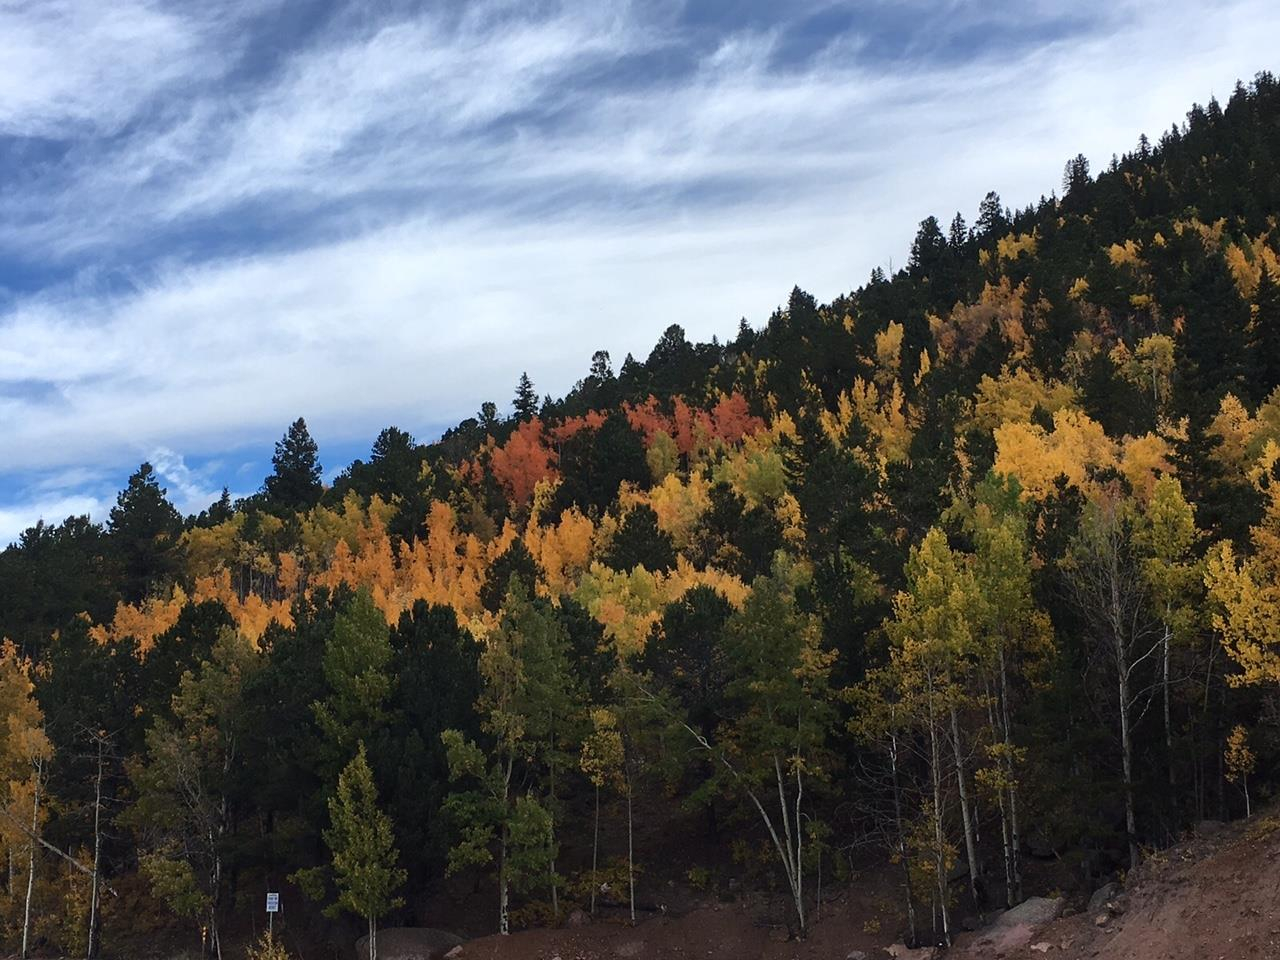 Fall colors in Divide, CO